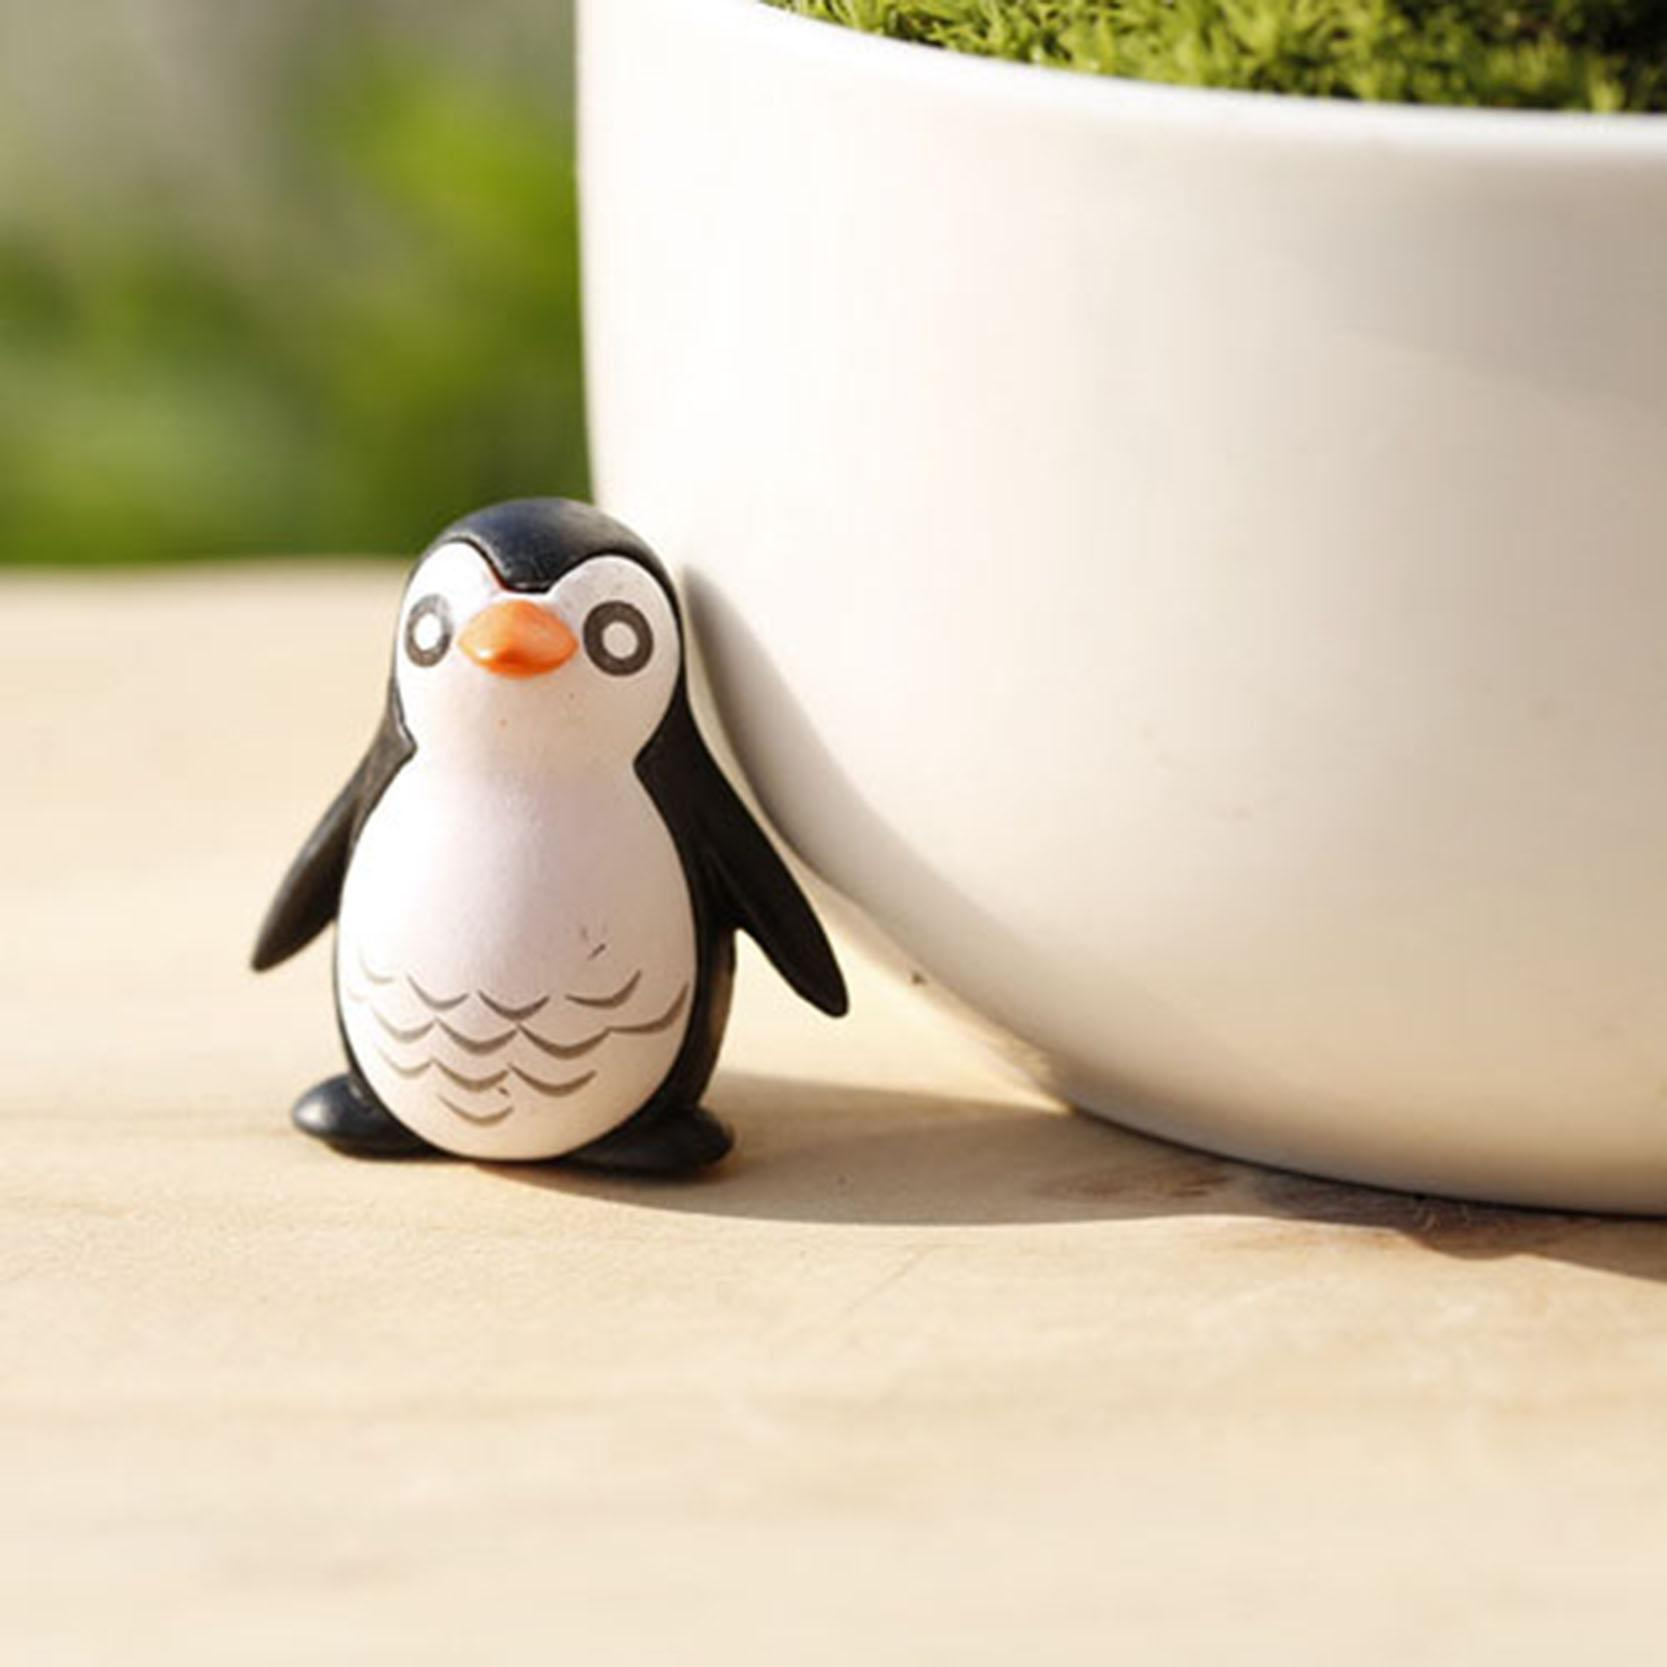 Out Indoor Cute Penguin Garden Decorative Home Desktop Decors Diy Christmas  Xmas Party For Garden Tile Decals For Shower Tile Decals Kitchen From  Wzq122, ...